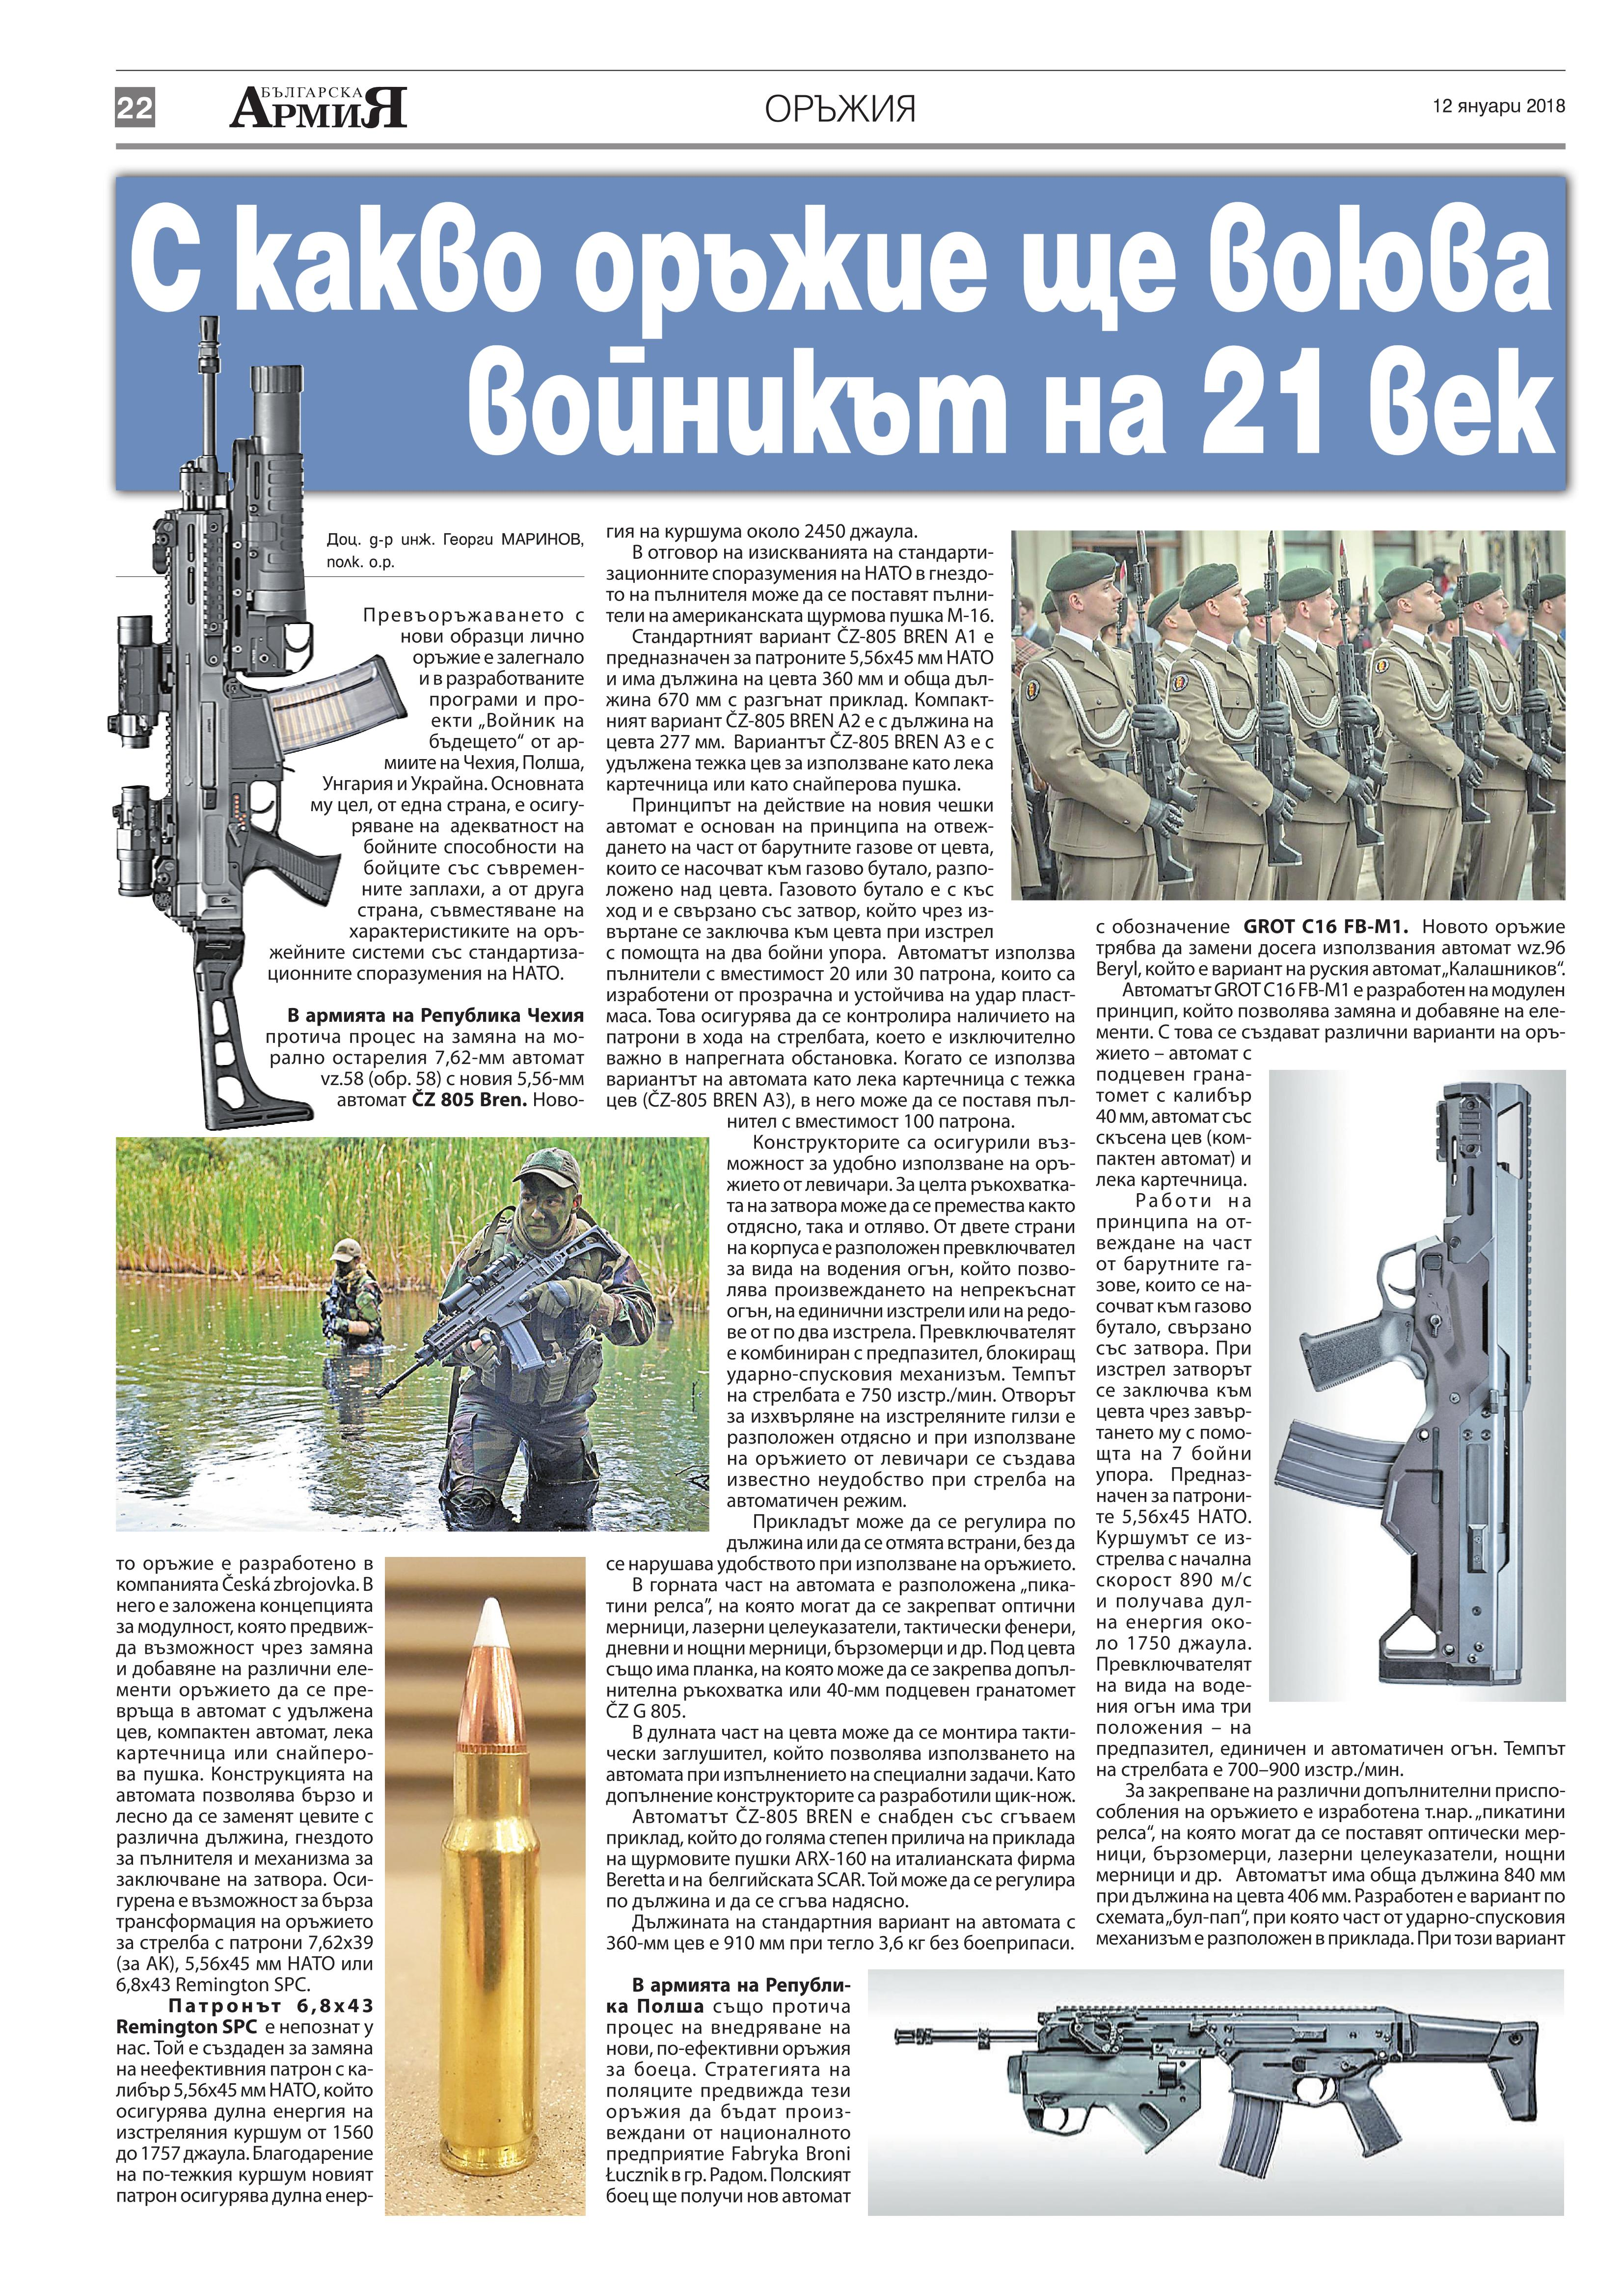 http://armymedia.bg/wp-content/uploads/2015/06/22.page1_-36.jpg